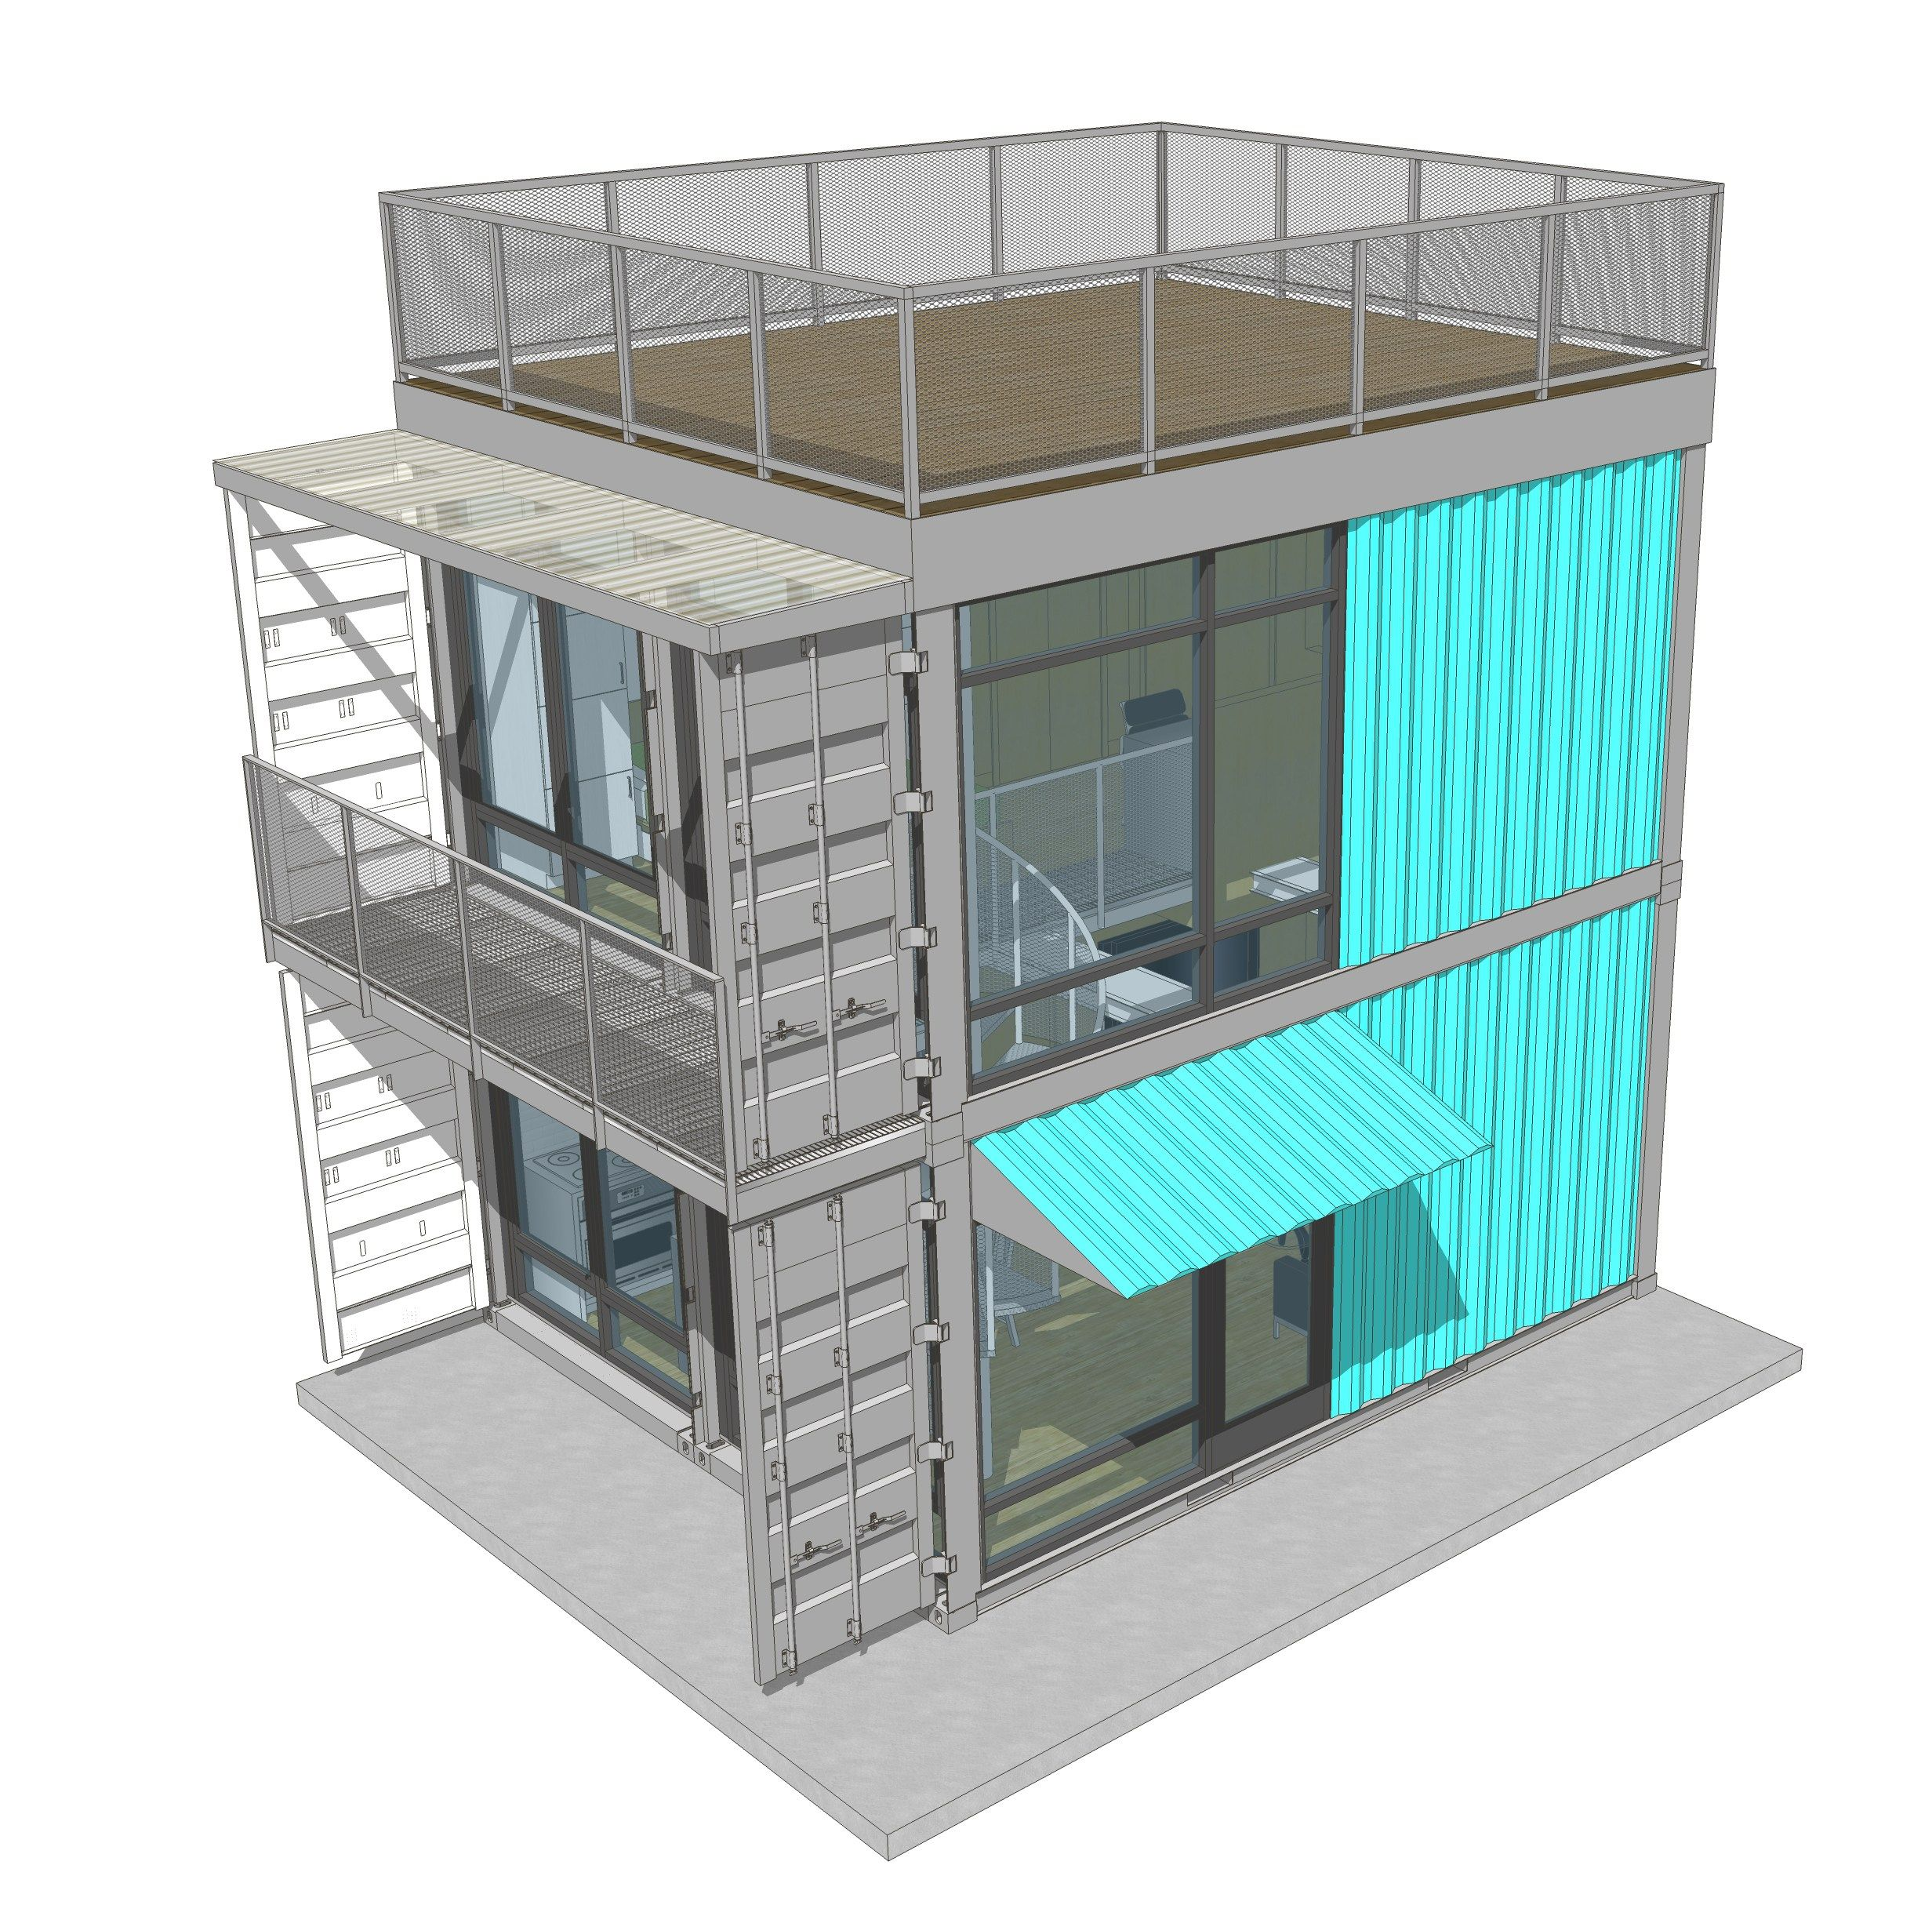 shipping container apartments planned in schnitzelburg containerhome chippingcontainer design - Versand Container Huser Design Plne